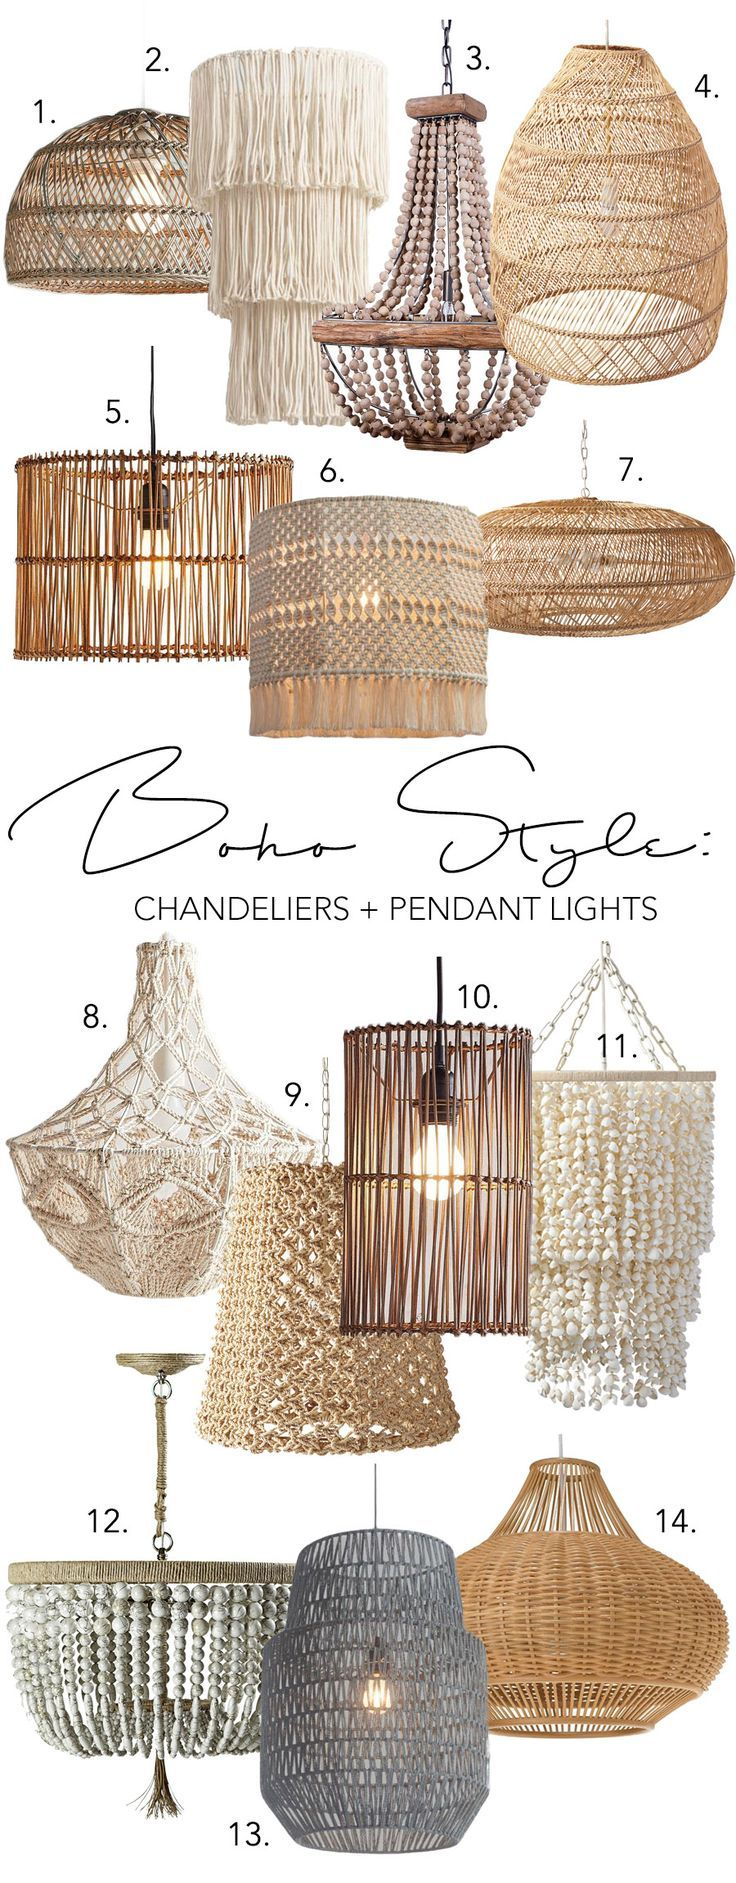 MODERN BOHO CHANDELIERS & PENDANT LIGHTS – 14 CHIC OPTIONS #bohobedroom